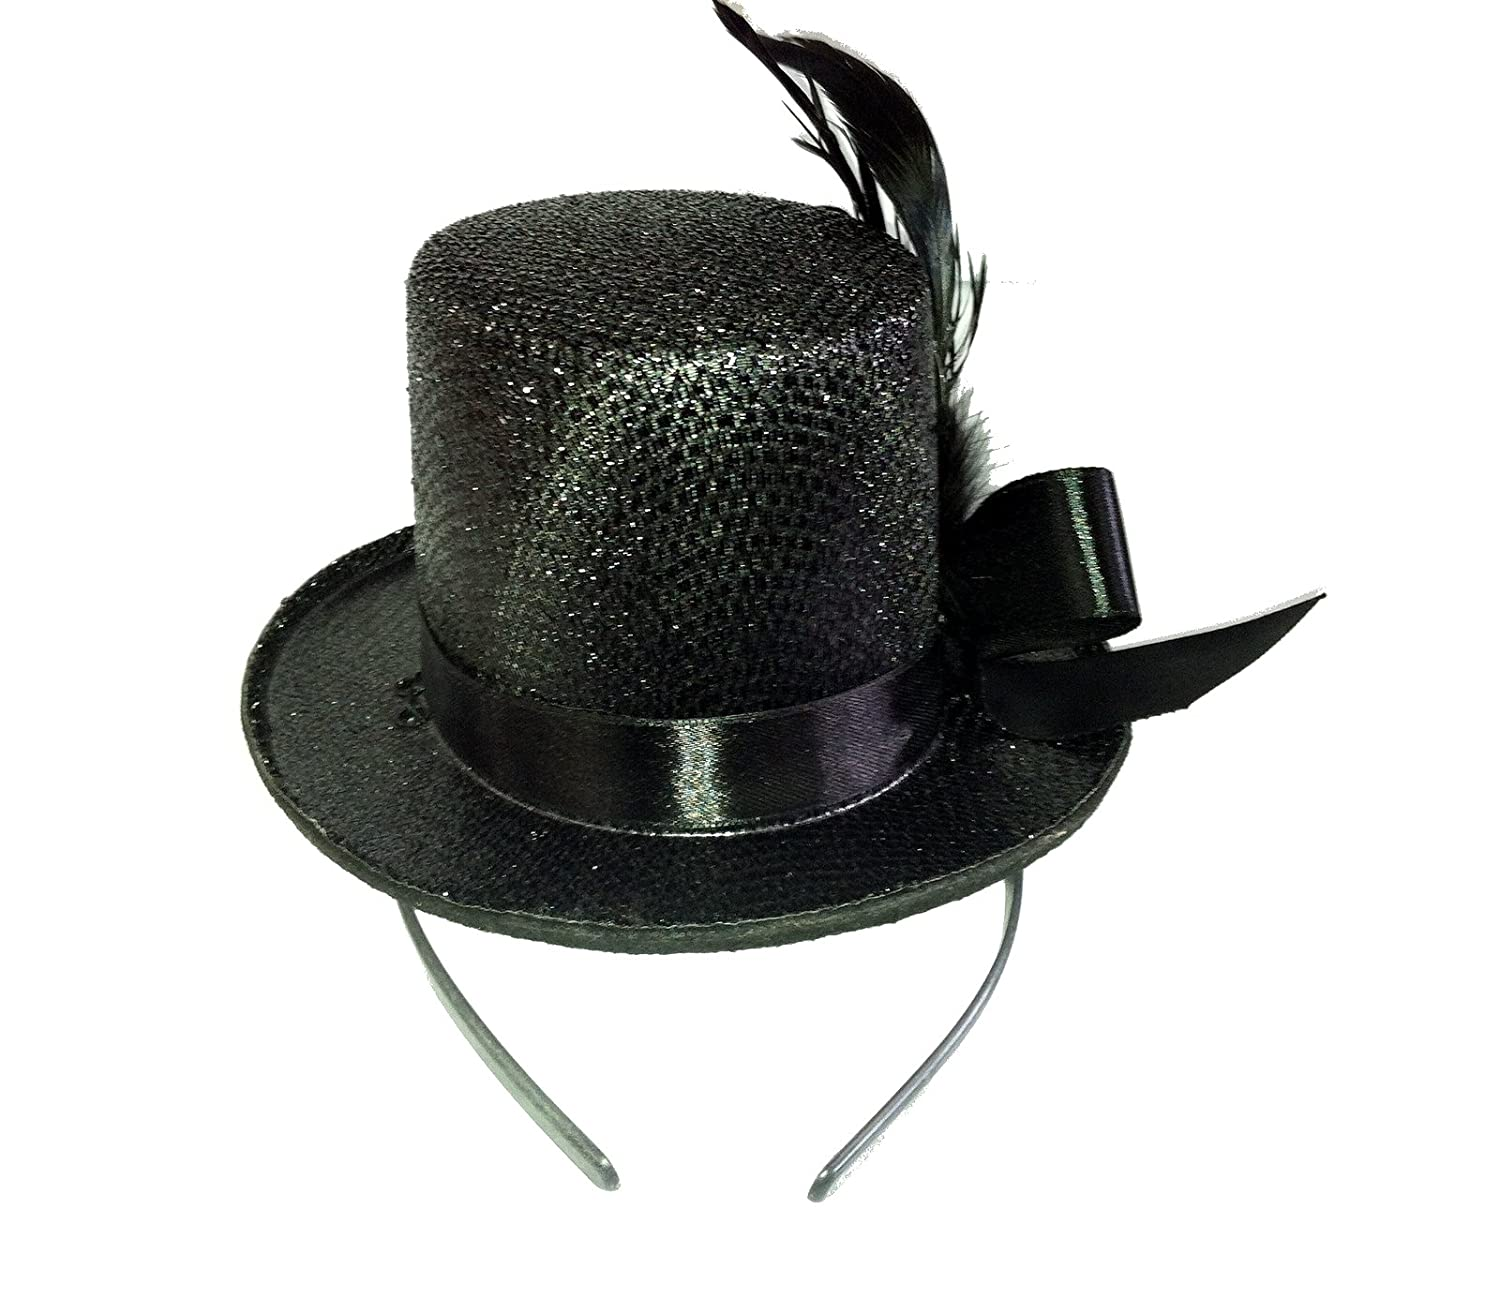 Amazon.com  Jacobson Hat Company 24610 (Black) Mini Glitter Top Hat   Clothing 6b492885877